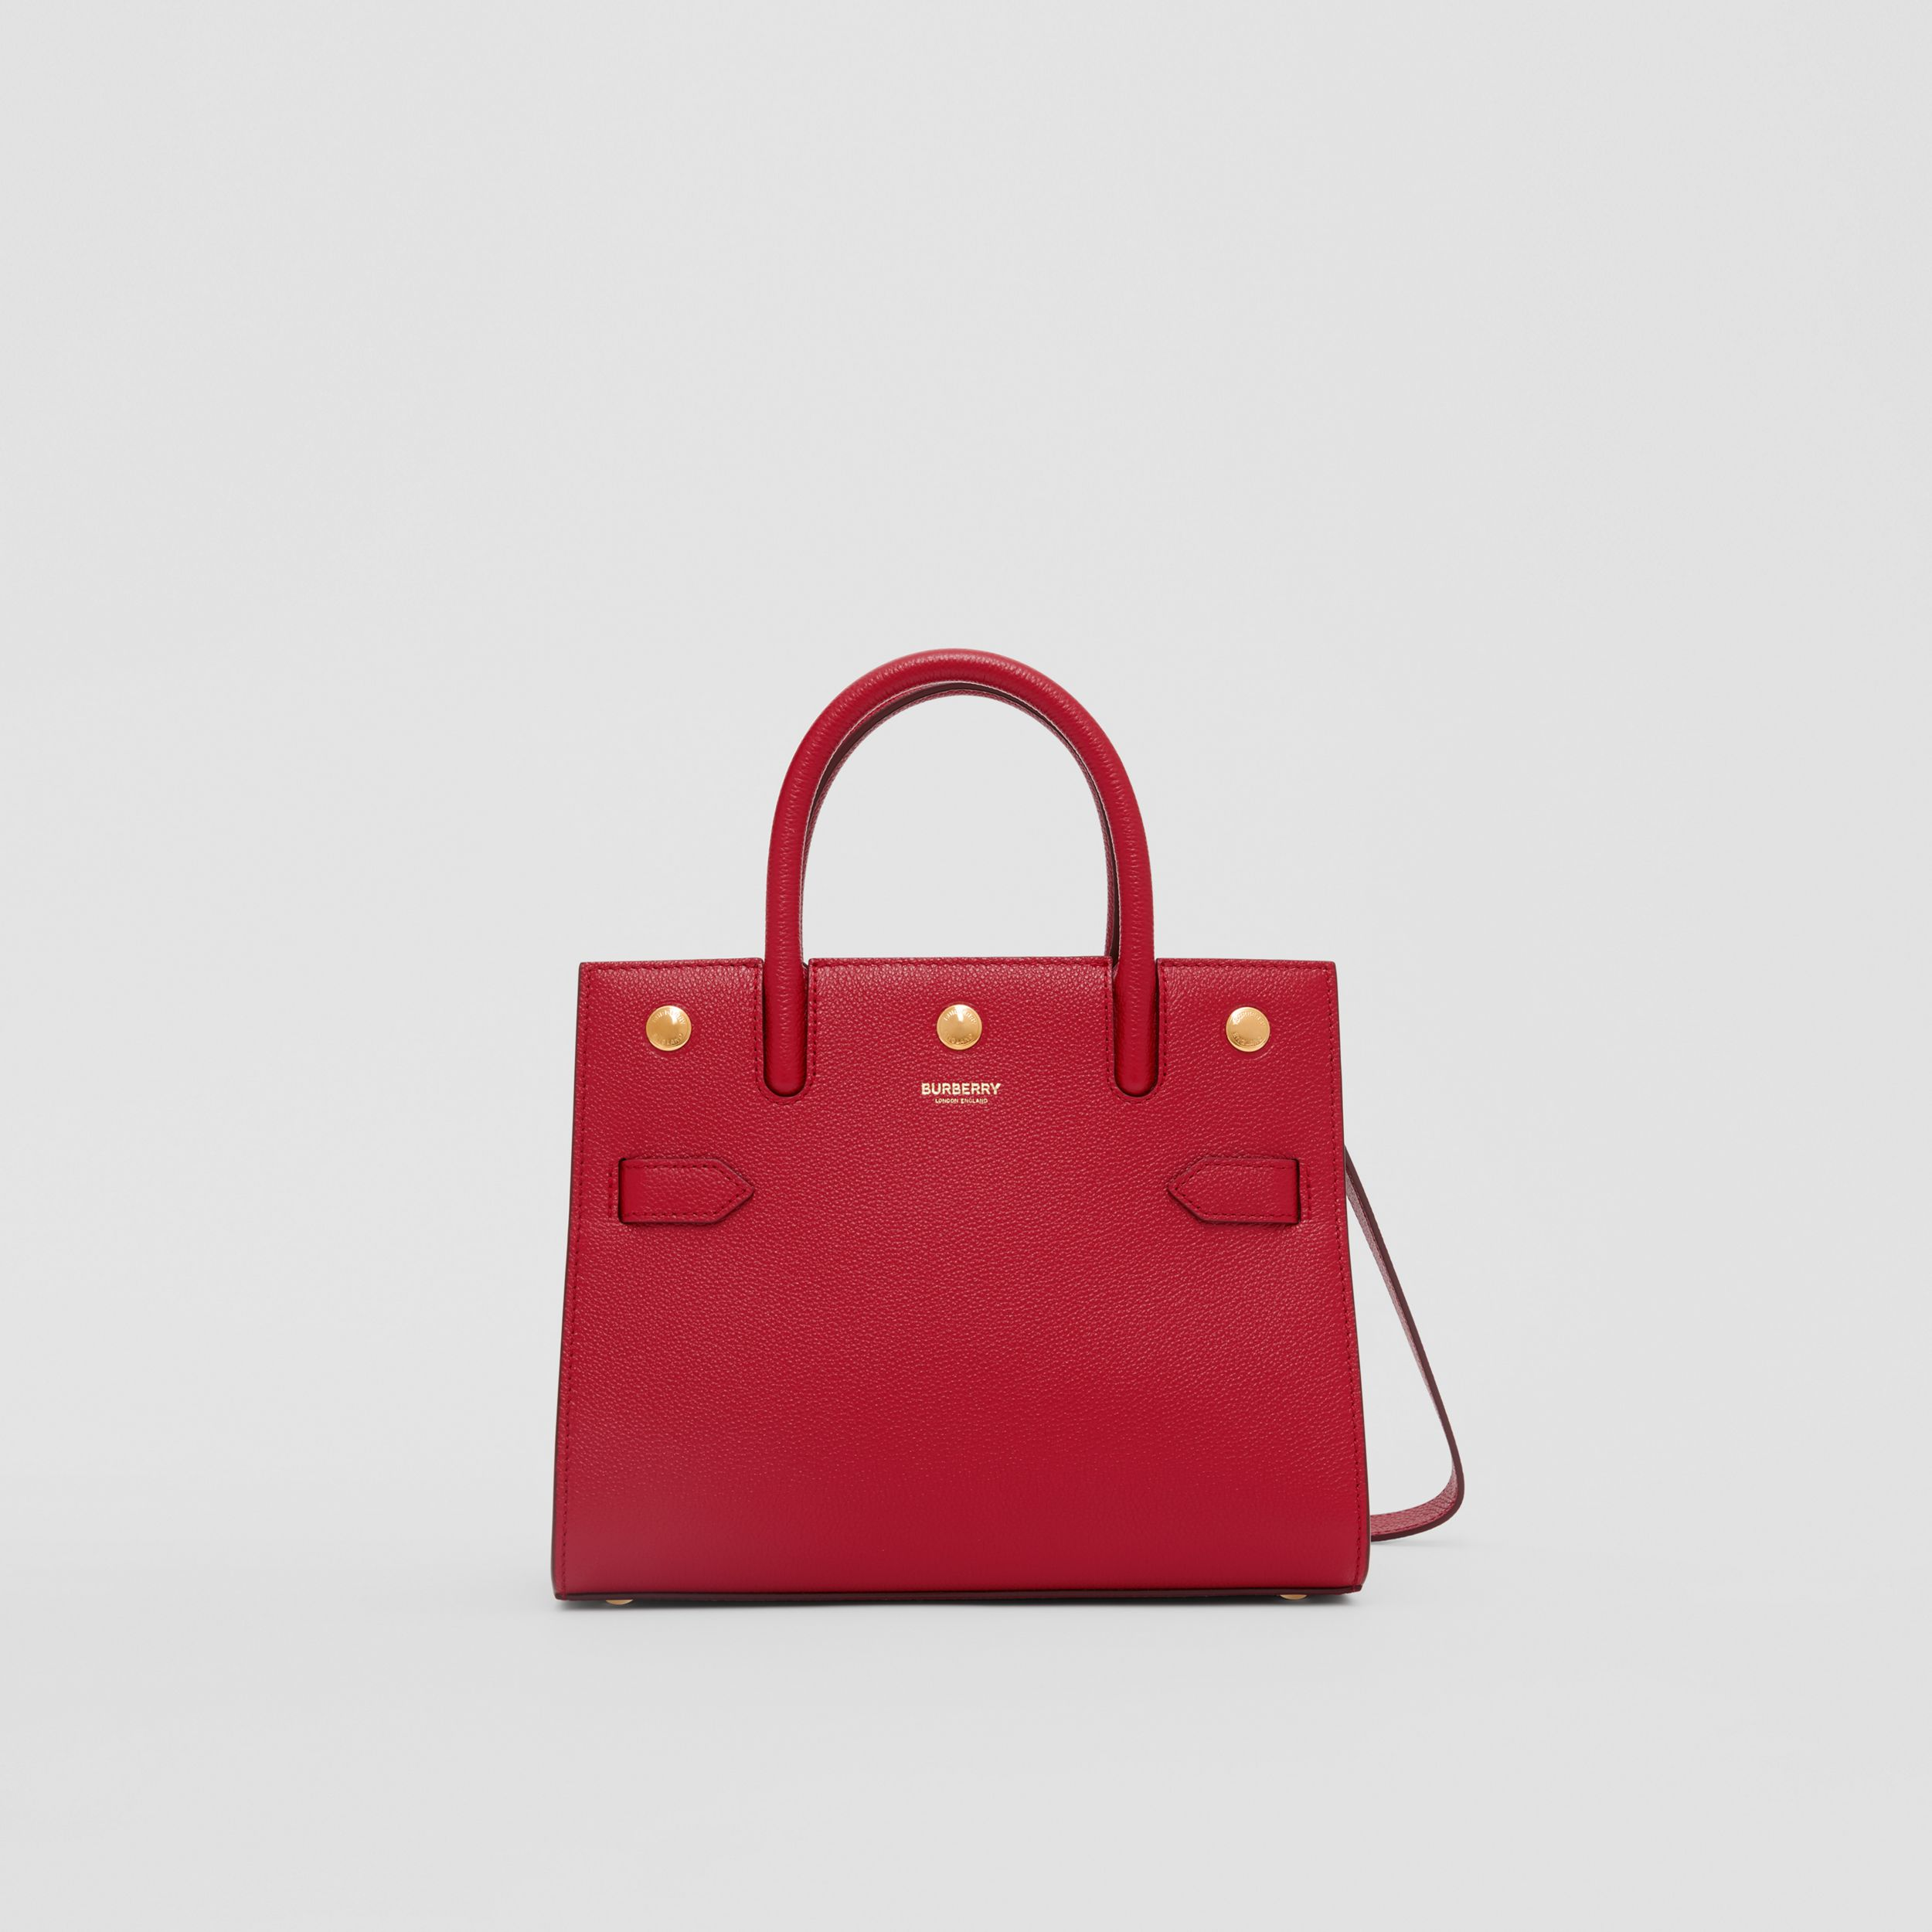 Mini Leather Two-handle Title Bag in Dark Carmine - Women | Burberry - 1